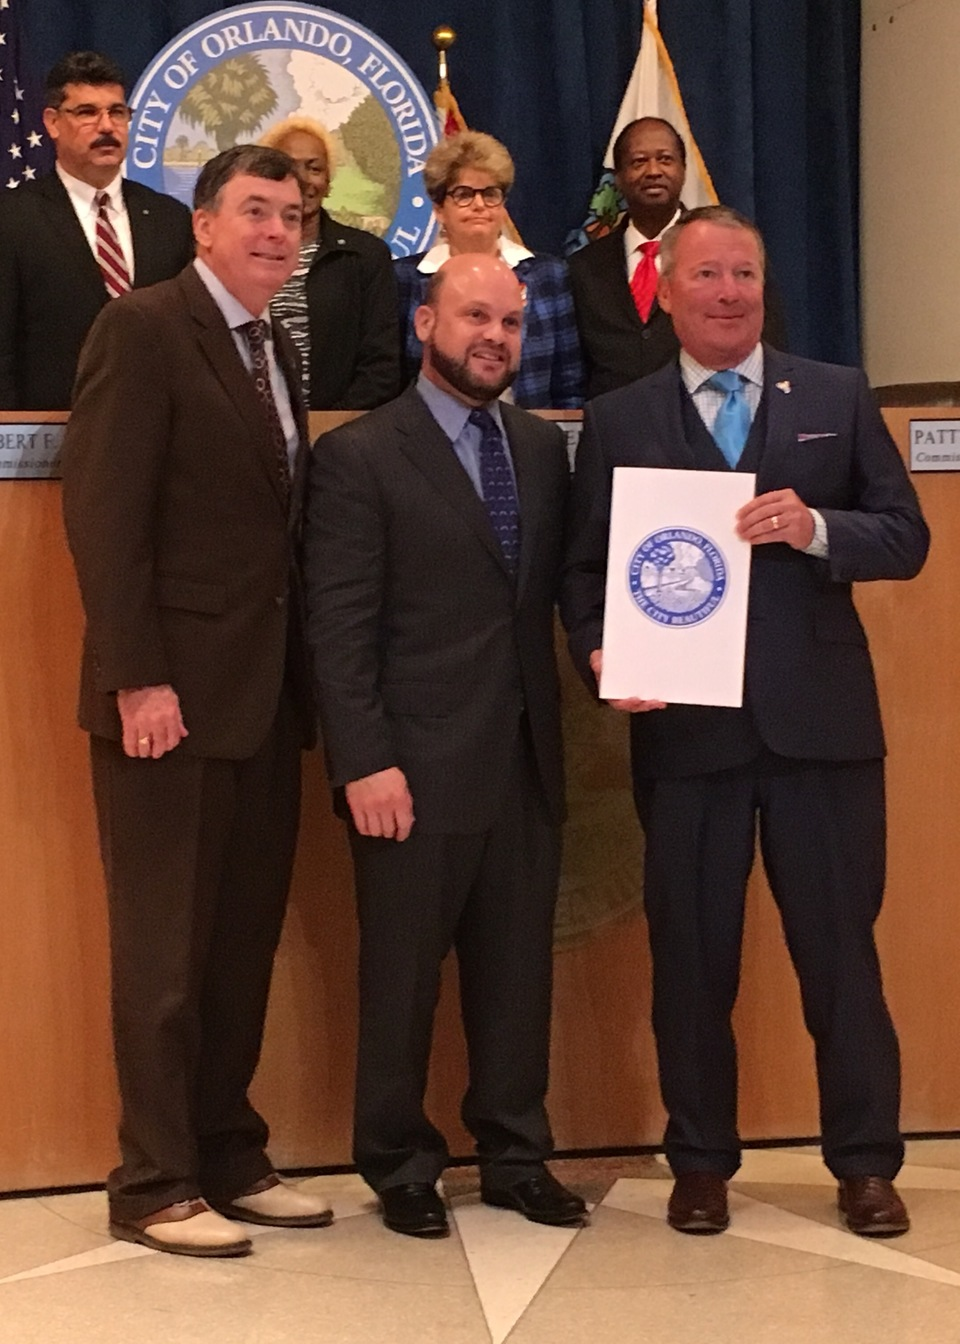 Orlando Commissioner Robert Stuart, left; UWWM Mediator/Arbitrator Lawrence Kolin, center; and Mayor Buddy Dyer pose for a picture after the City Council meeting.